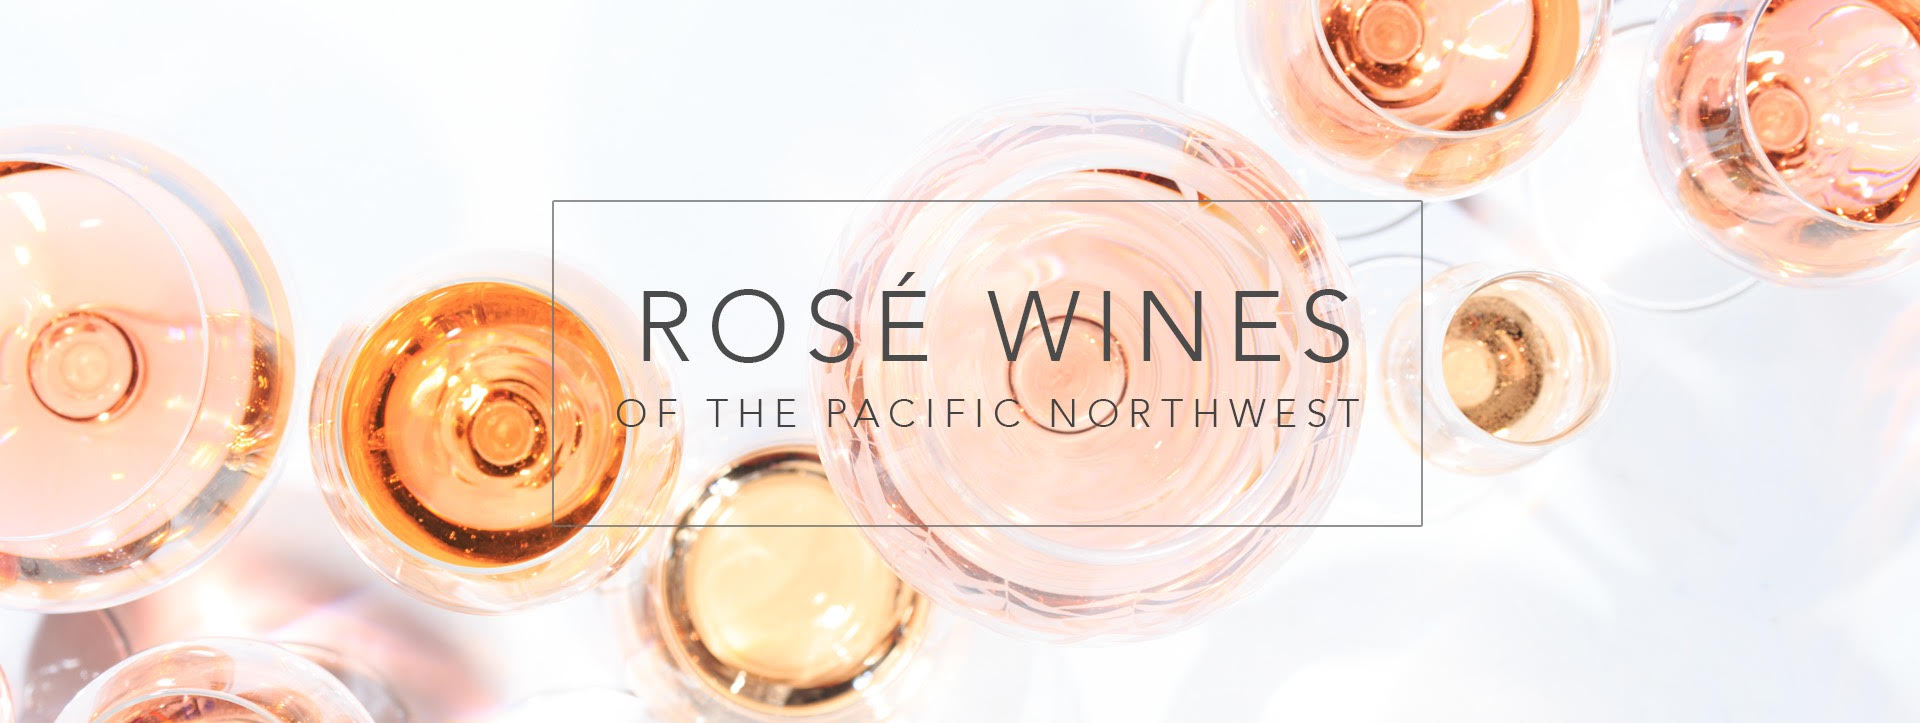 Our comprehensive 2019 Pacific Northwest Rose Report has highlighted some exceptional new release Rose wines from the Pacific Northwest.